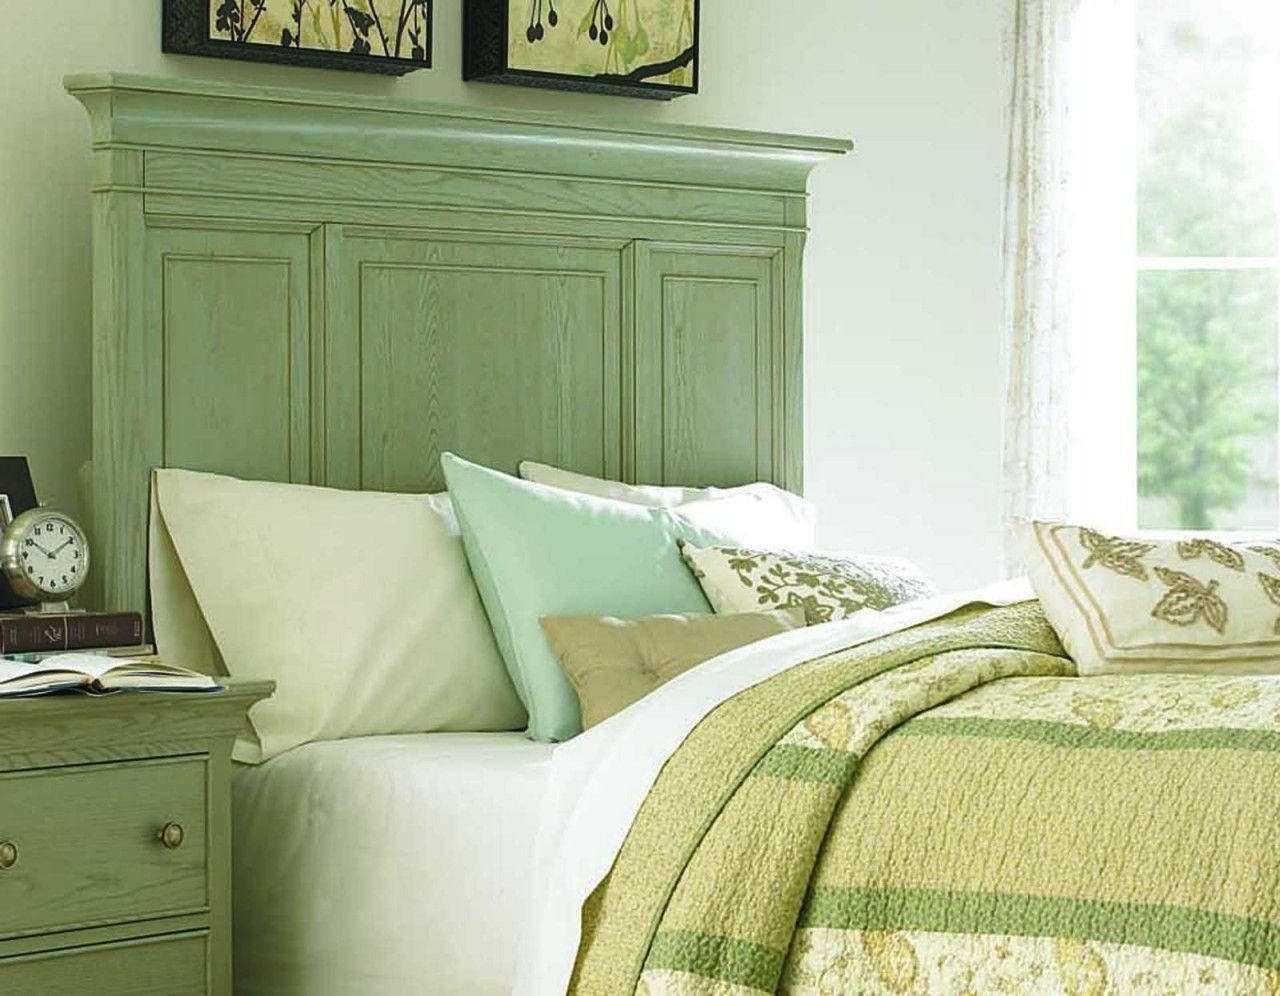 Modern Green Accented White Bedroom Decorating Ideas - Home Decorating Ideas At Amurhotel.com | Sage Green Bedroom, Green Room Colors, Blue Green Bedrooms